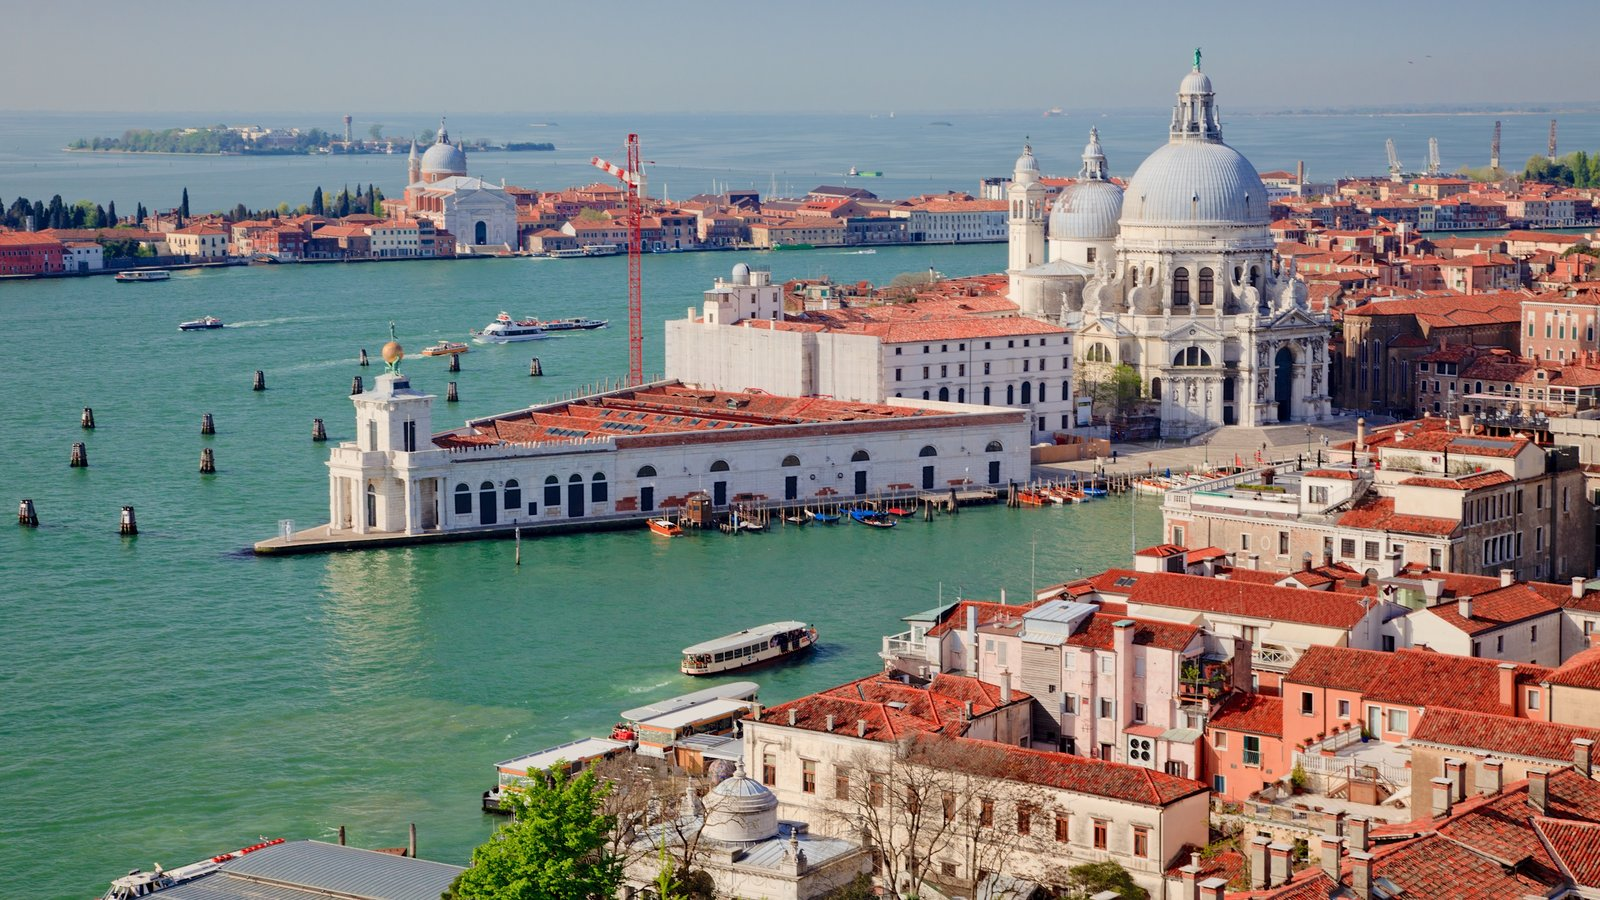 Venice featuring a city, a church or cathedral and landscape views